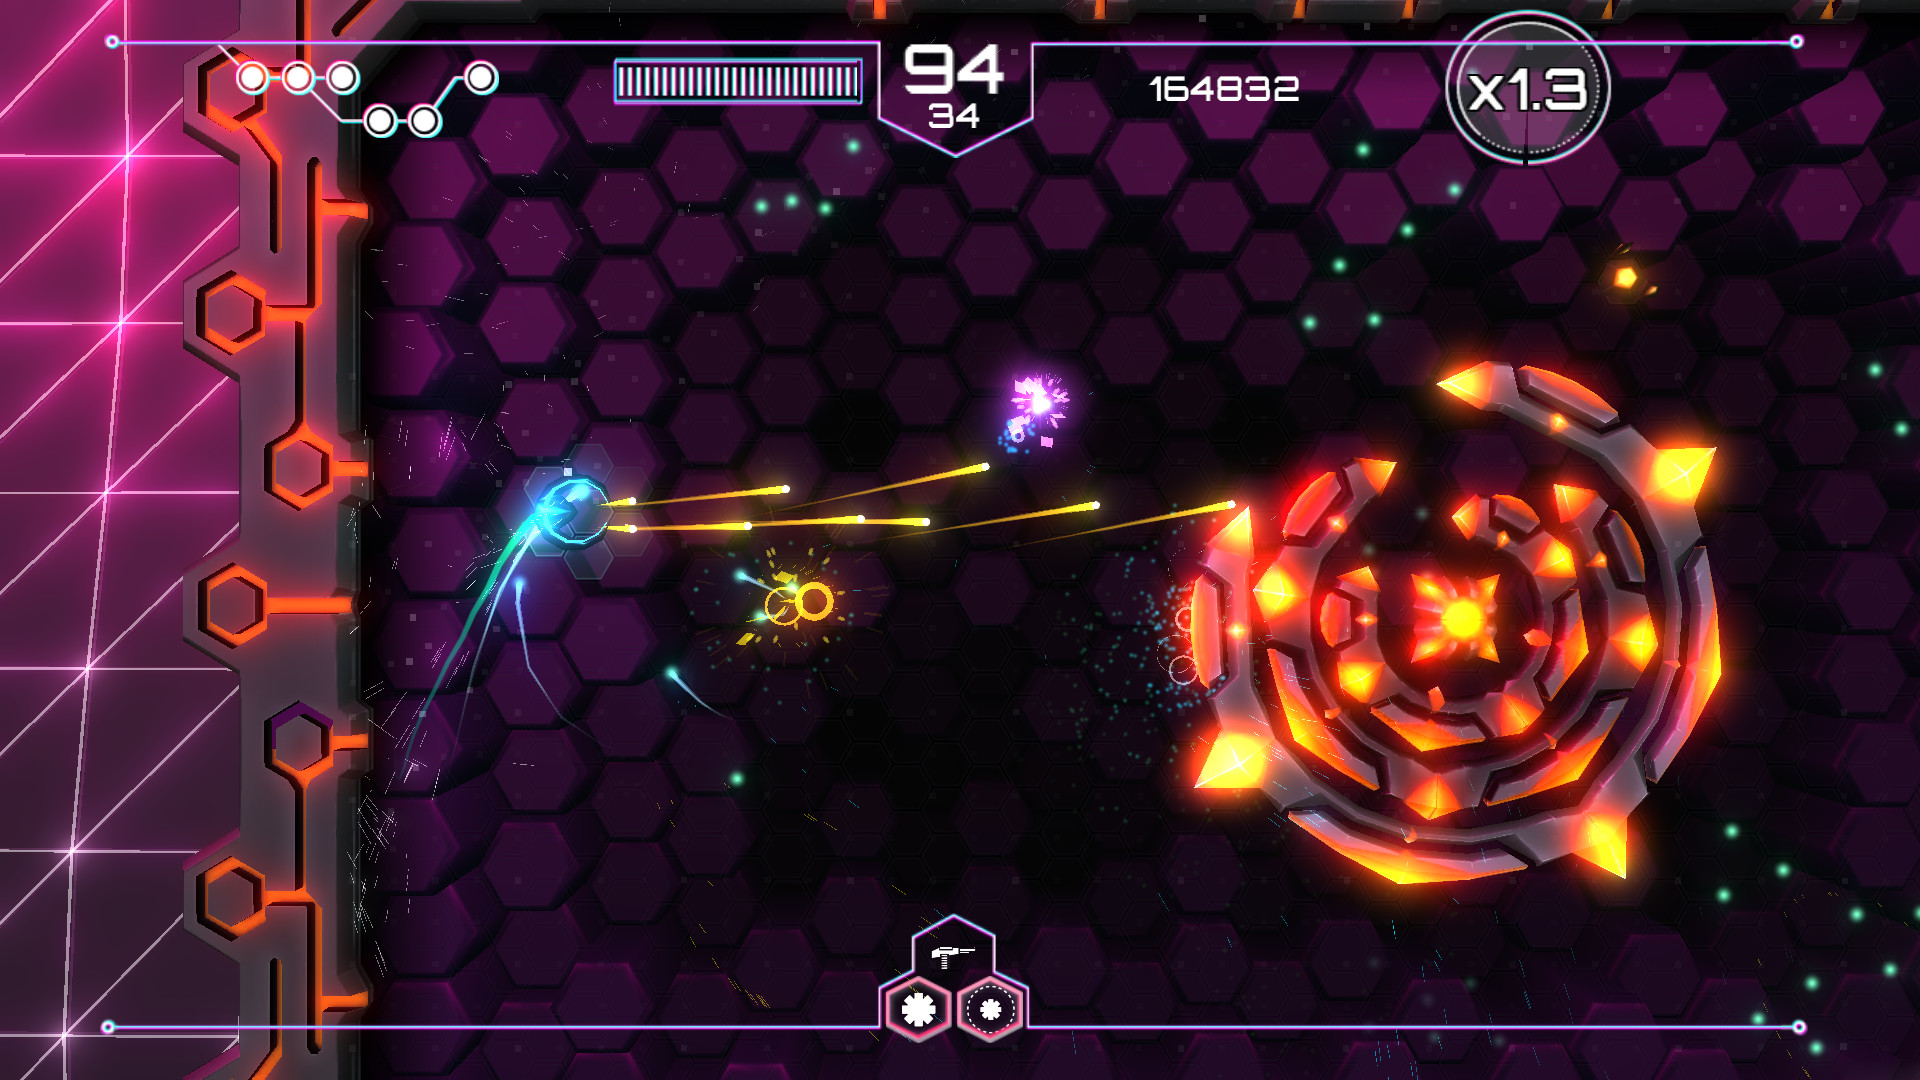 A screenshot from the game Tachyon Project. The player fires at a giant, glowing, cylindrical enemy.